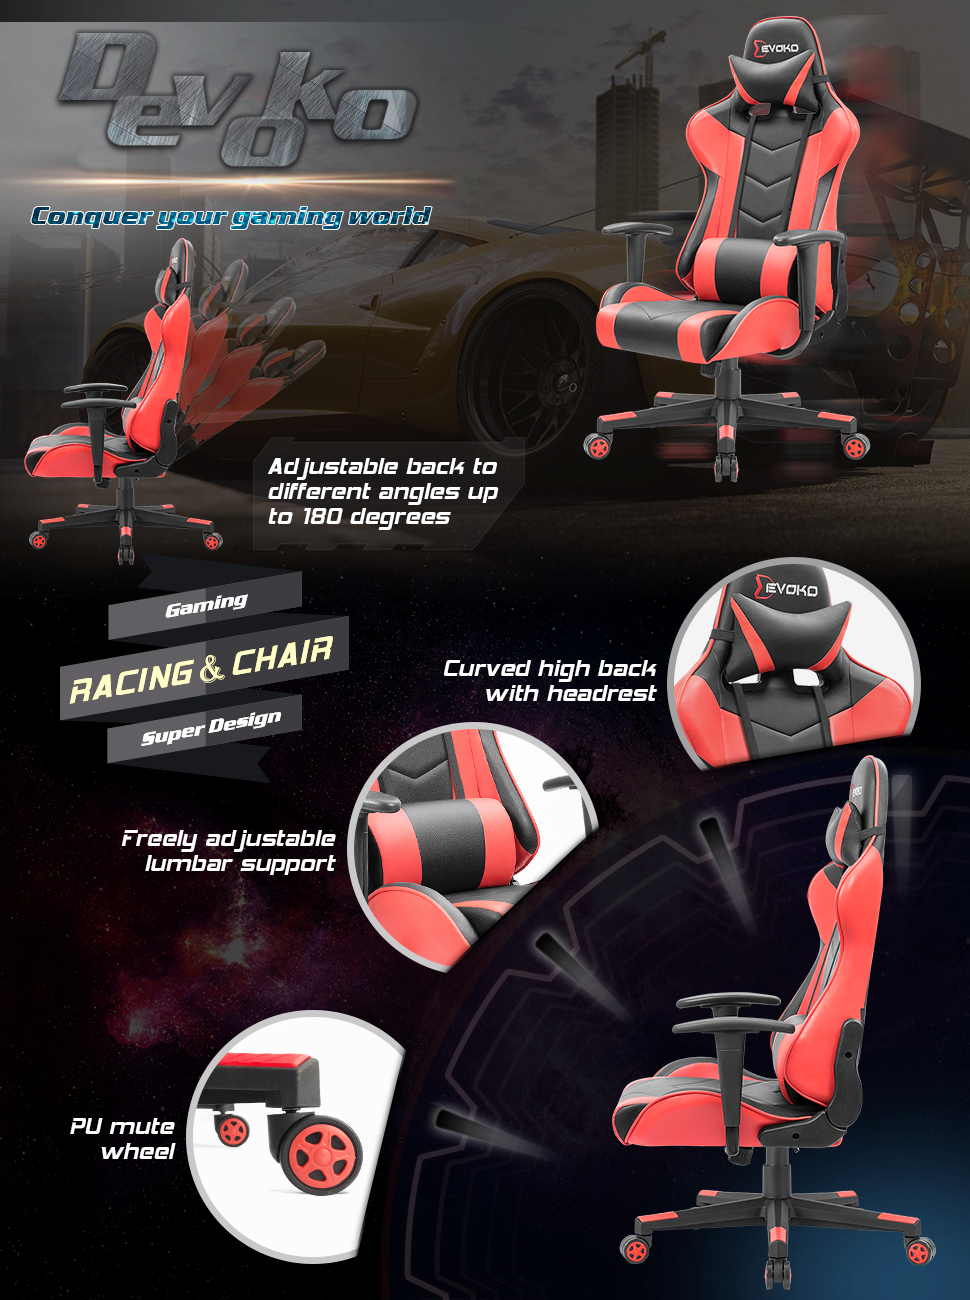 gaming chair  Devoko Ergonomic Gaming Chair Racing Style Adjustable Height High-Back PC Computer Chair with Headrest and Lumbar Support Executive Office Chair (Red) 4d5684b5 9b68 44e4 88fb 8762b988a1e0